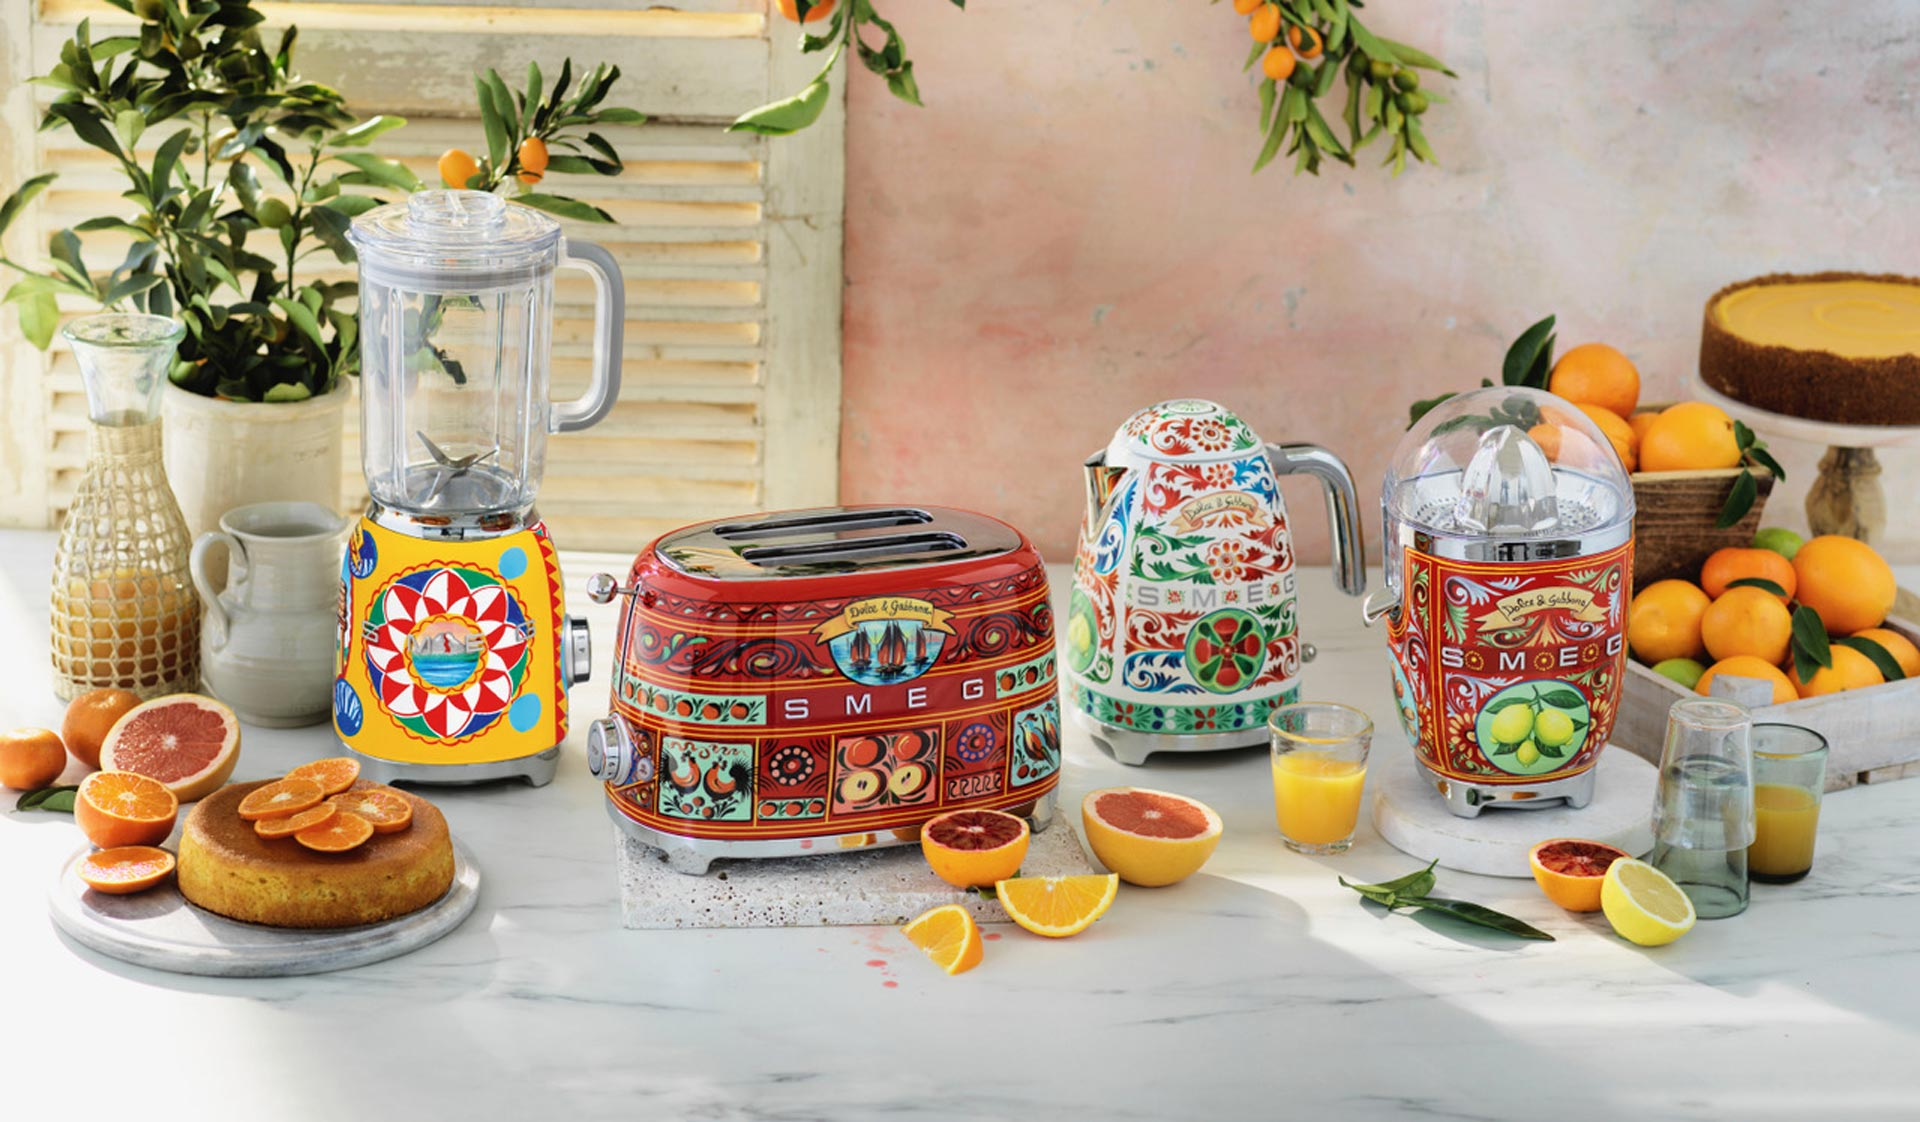 SMEG and Dolce & Gabbana - Group of kitchen appliances